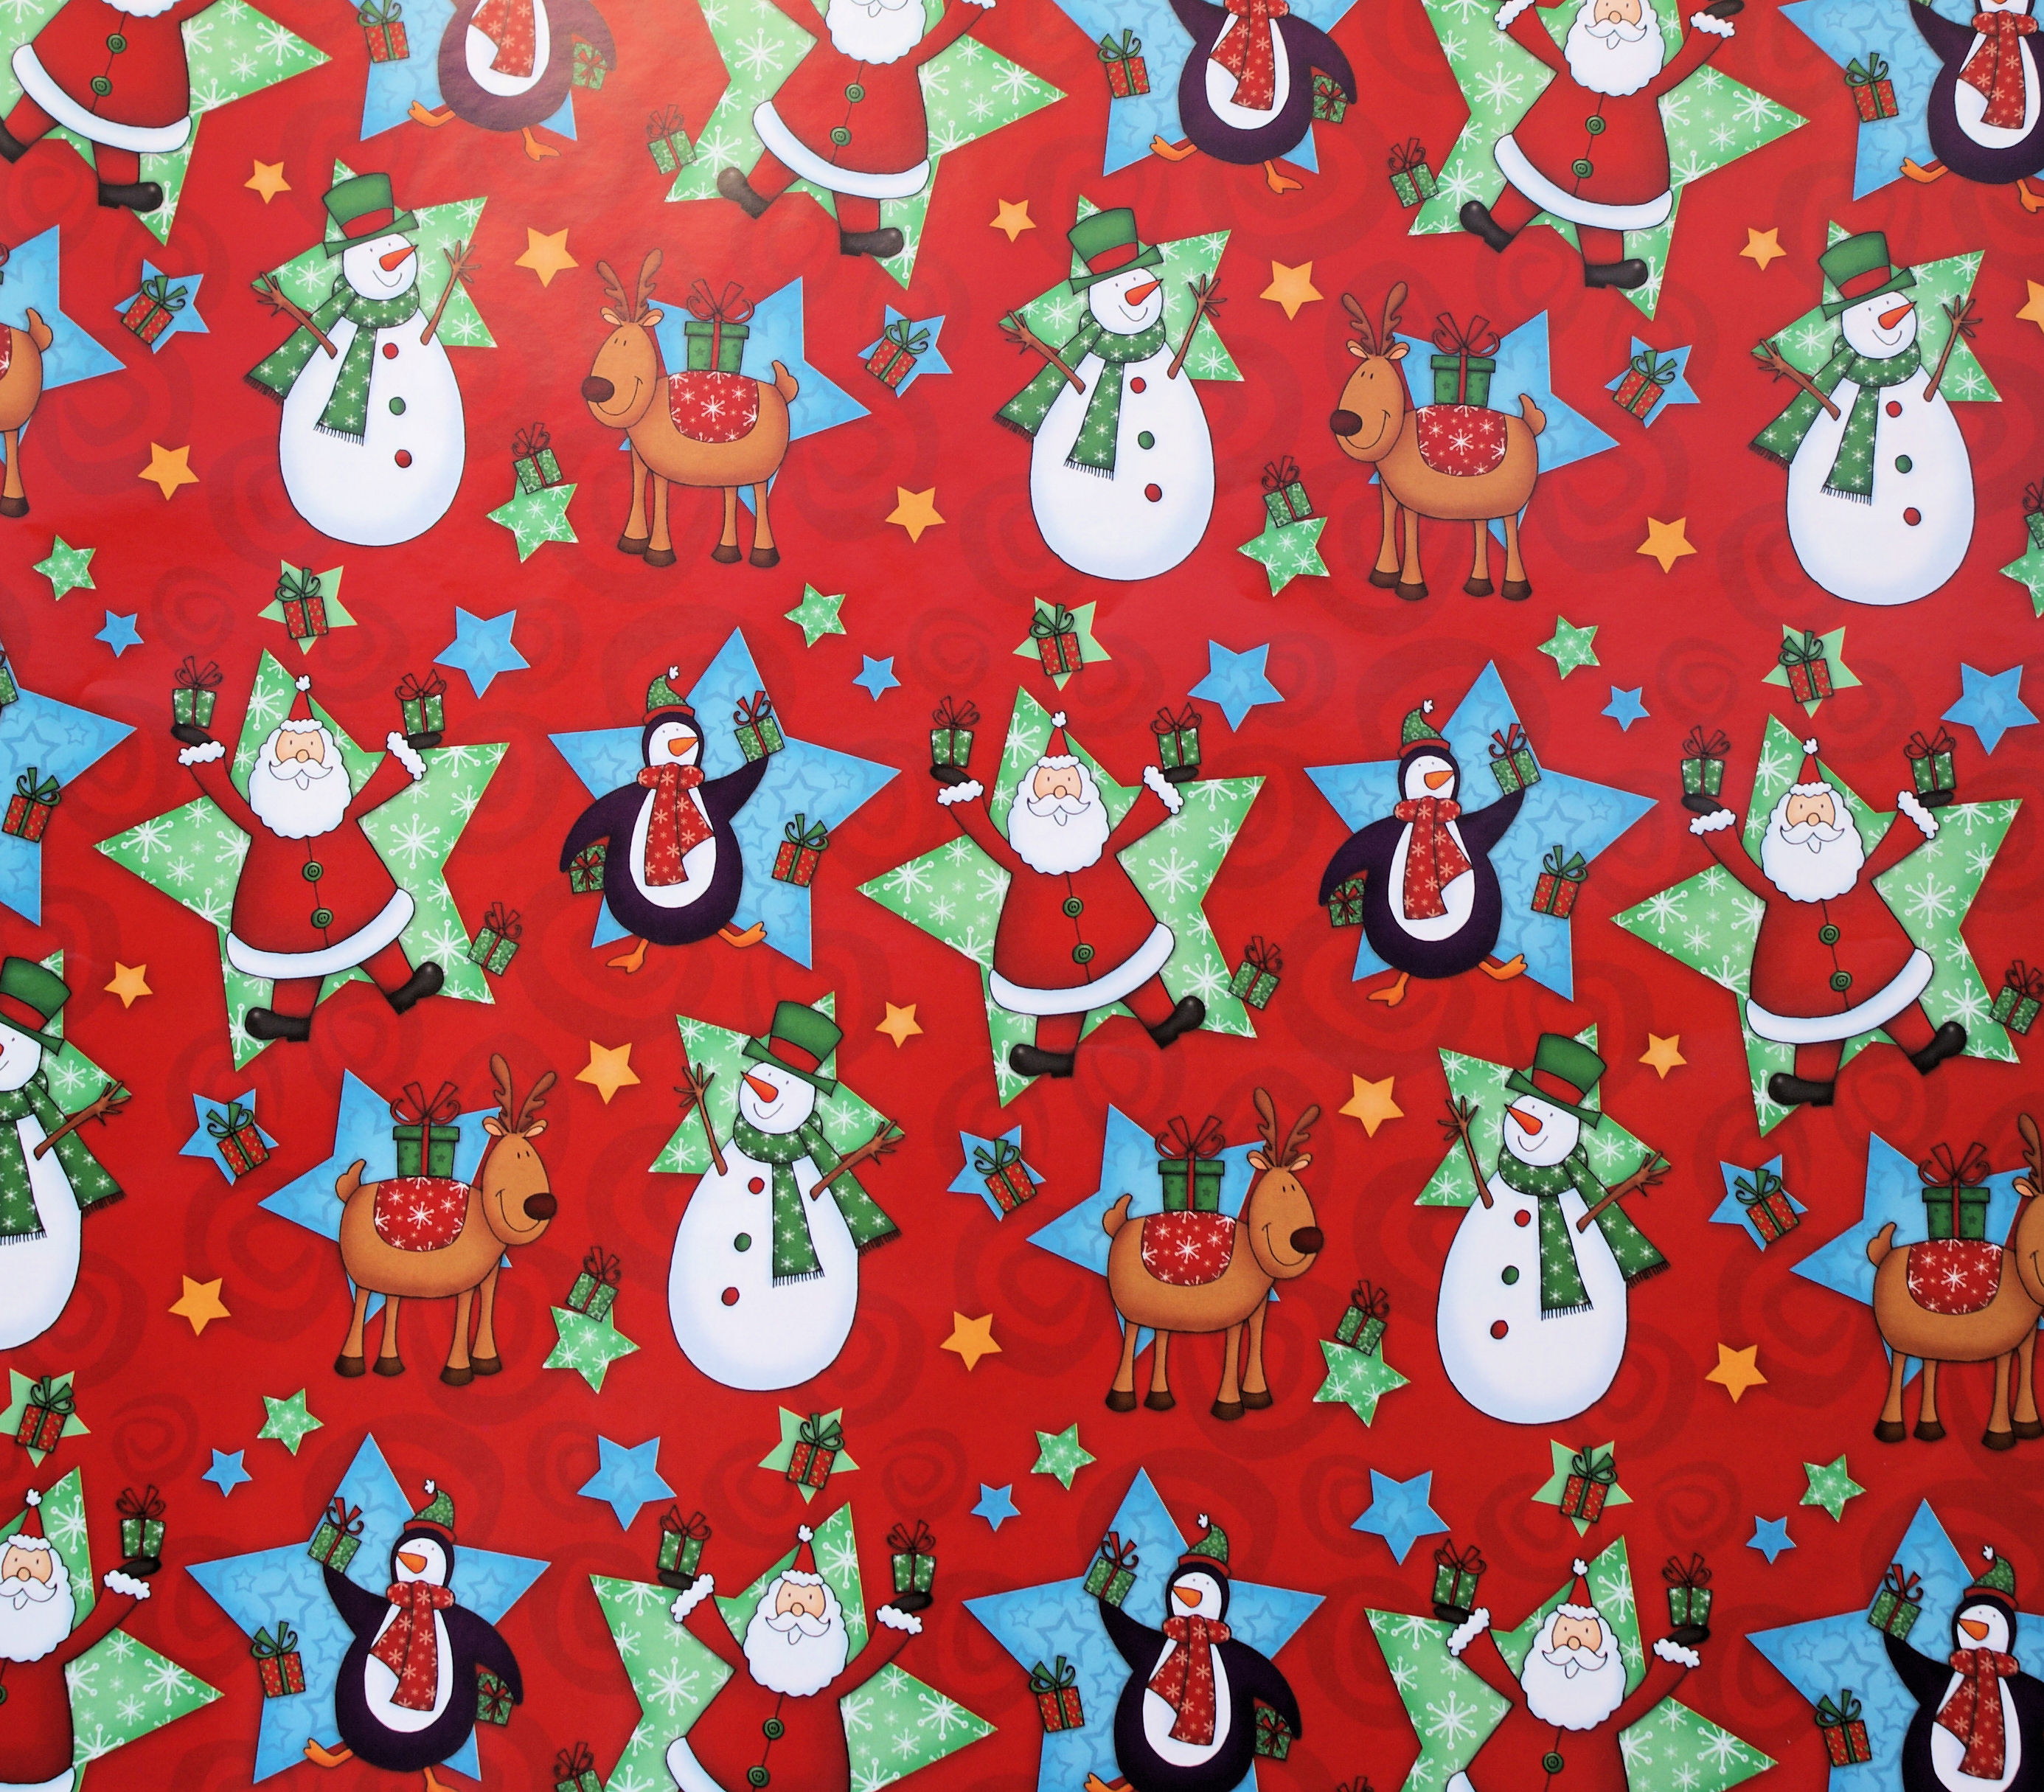 christmas wrapping paper example 4 - Christmas Paper